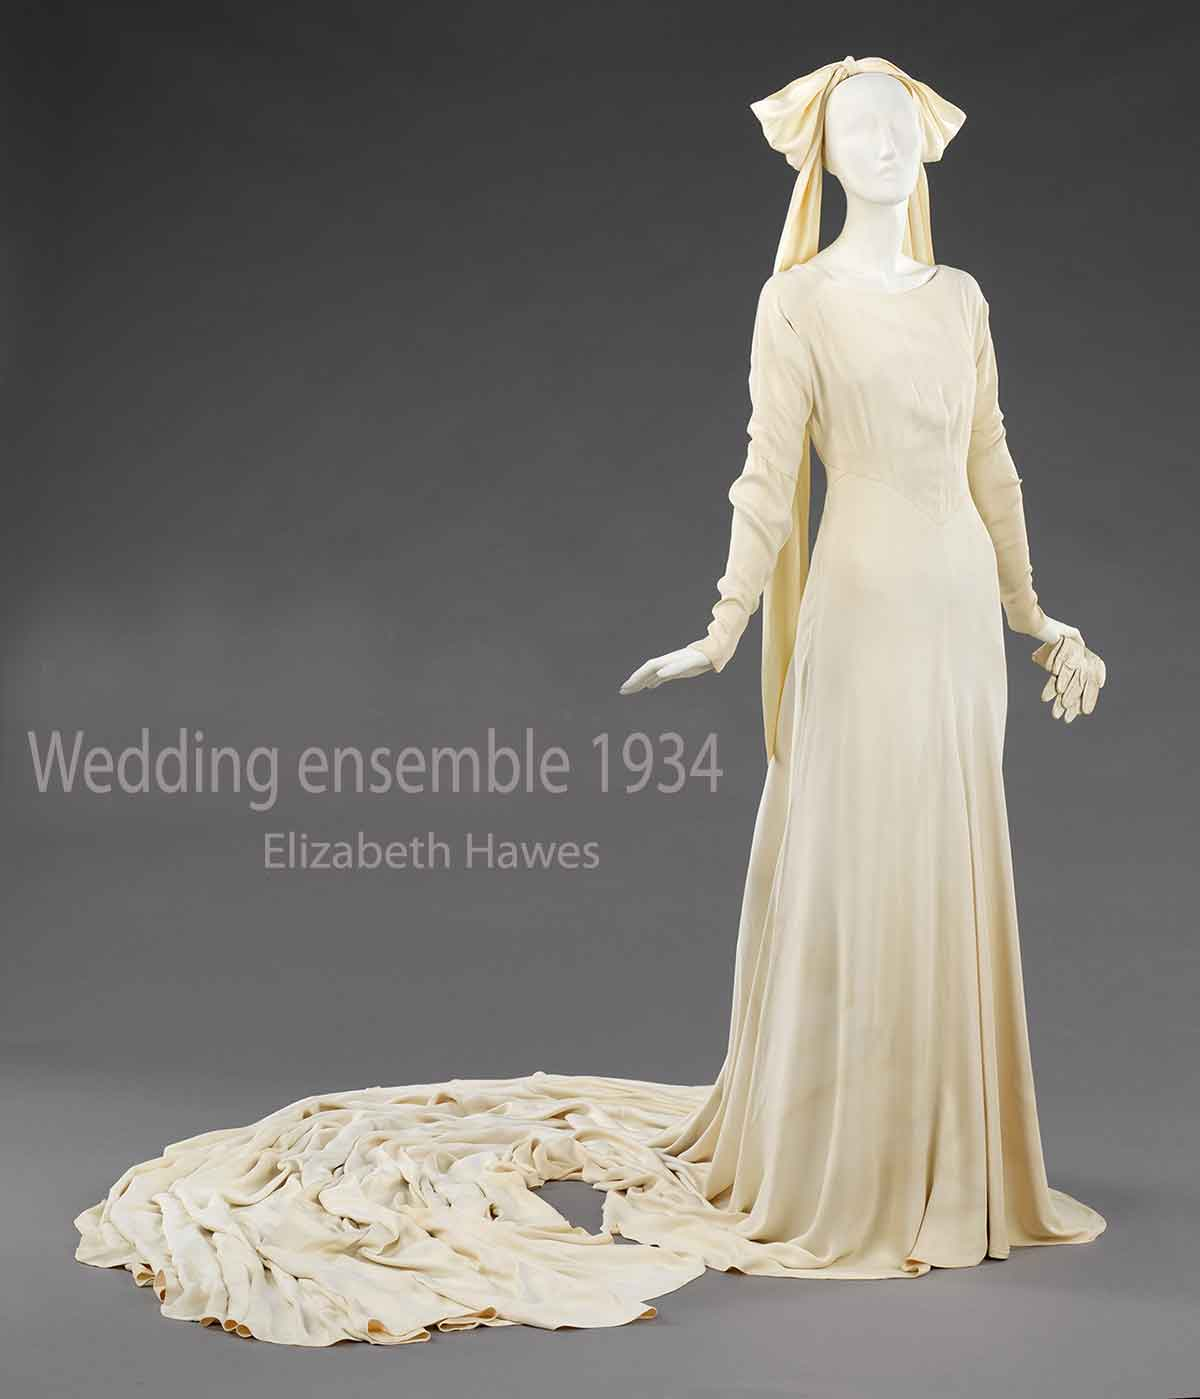 Wedding-ensemble-1934---Elizabeth-Hawes